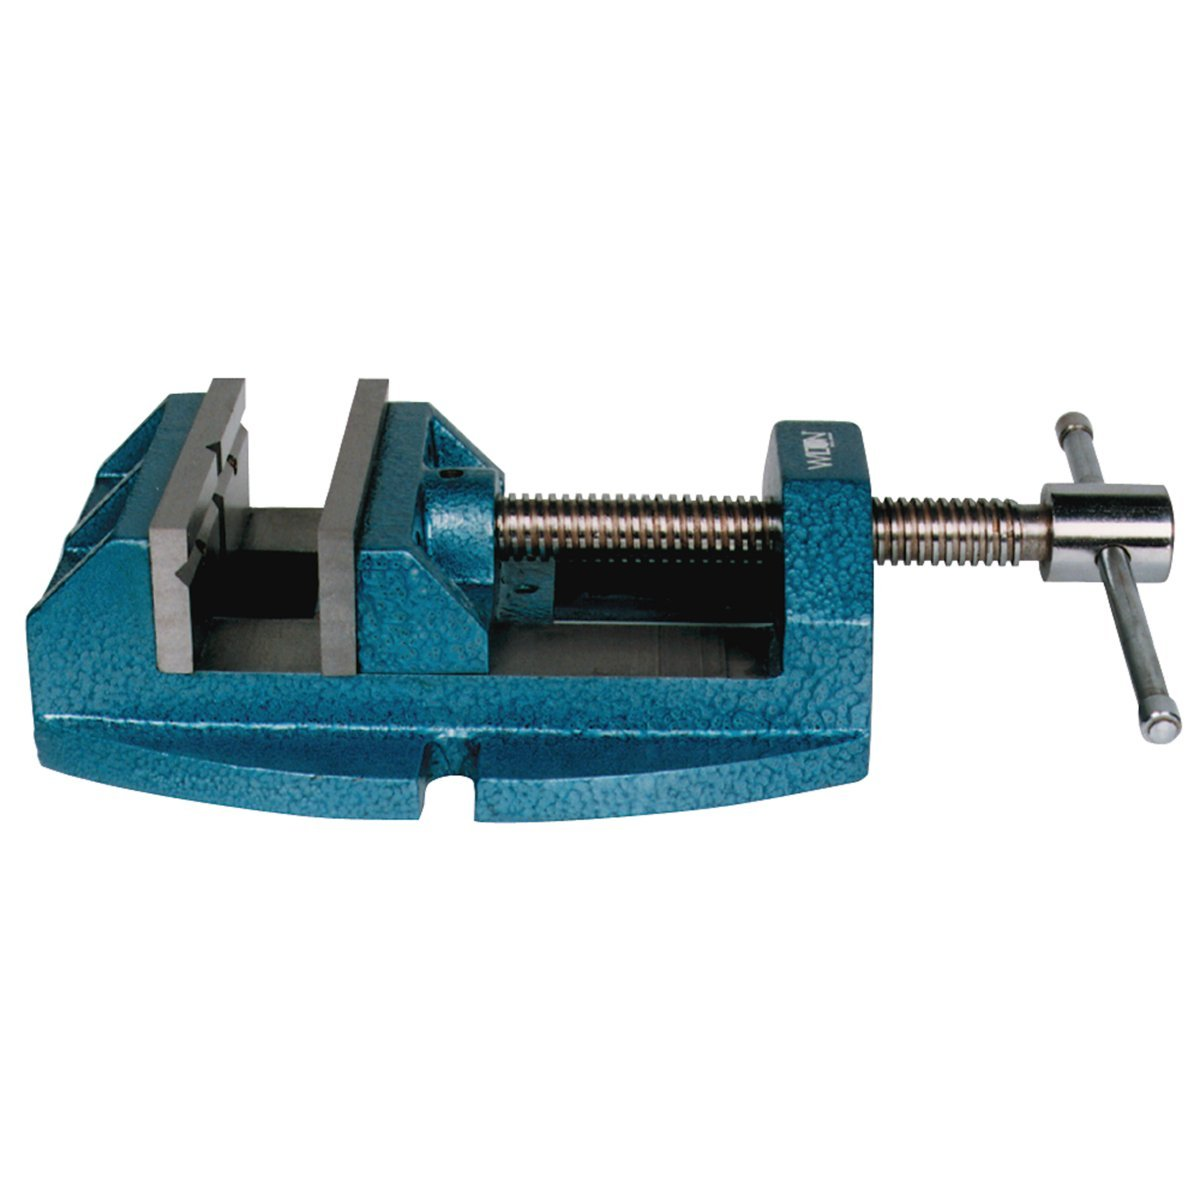 Wilton 63239 1345 Drill Press Vise Continuous Nut 4-Inch Jaw Opening WMH Tool Group